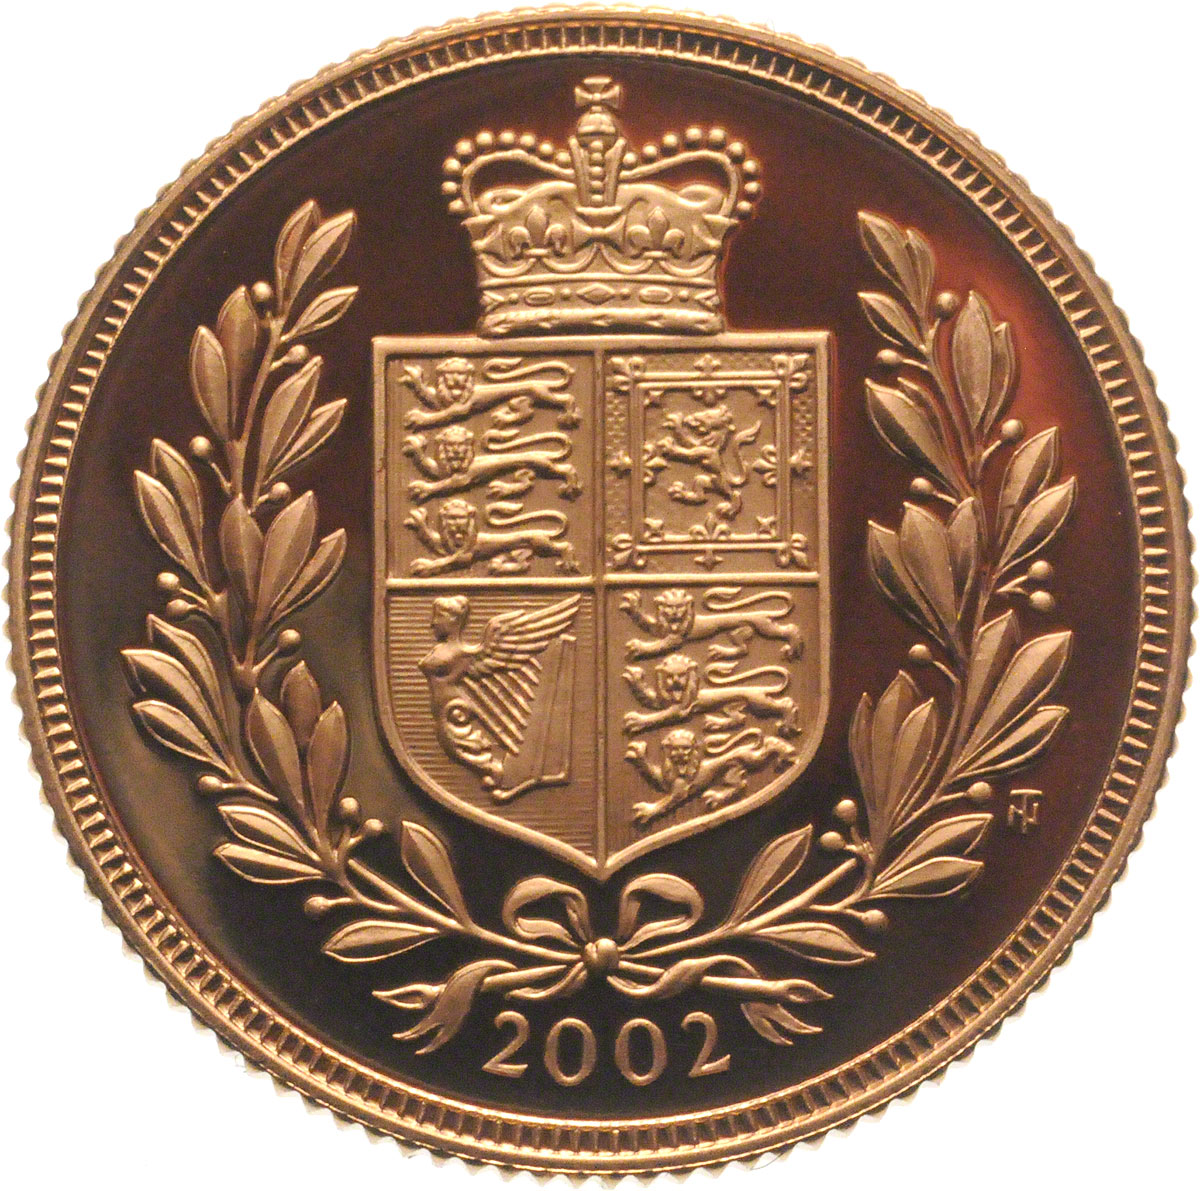 Reverse Face of a 2002-Gold-Sovereign